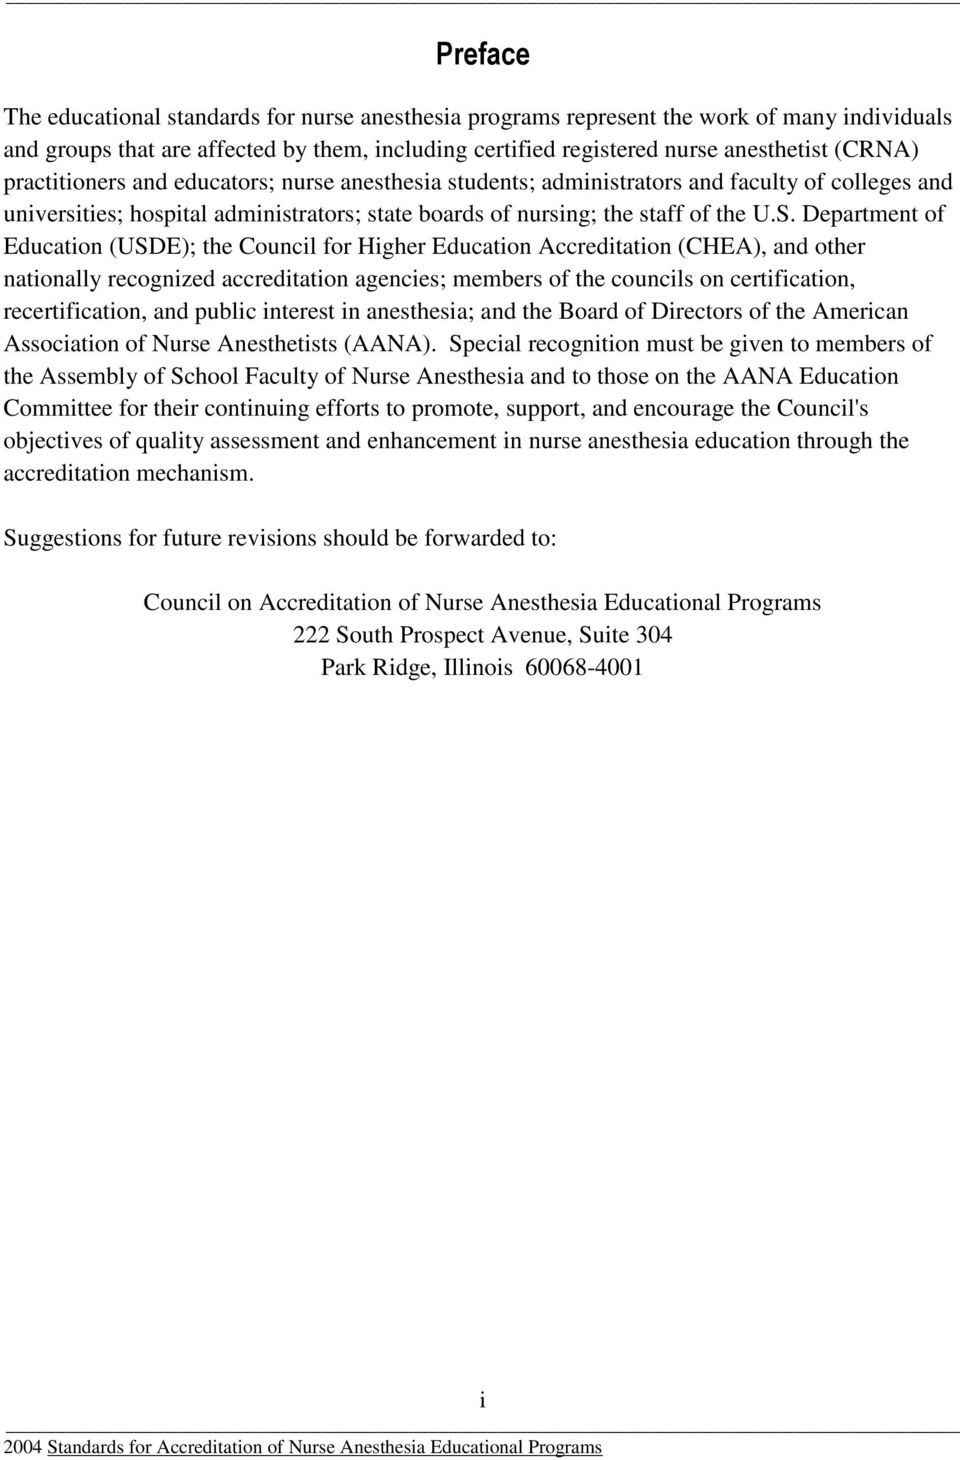 Department of Education (USDE); the Council for Higher Education Accreditation (CHEA), and other nationally recognized accreditation agencies; members of the councils on certification,